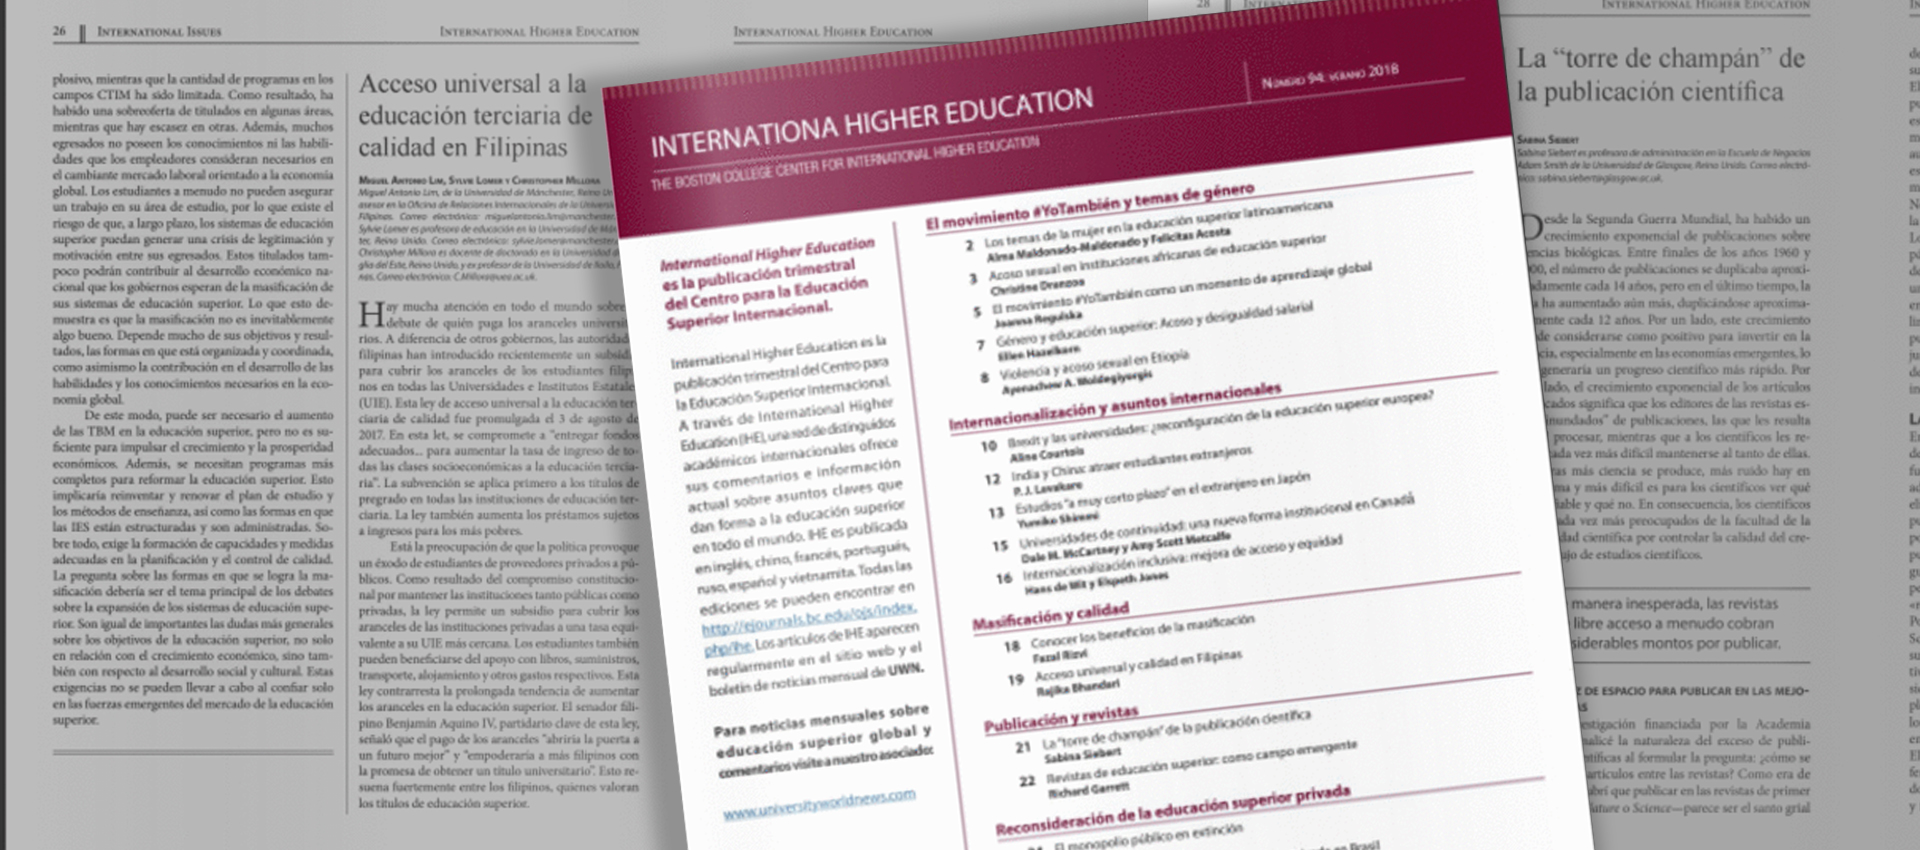 Nº 98 de la Revista International Higher Education